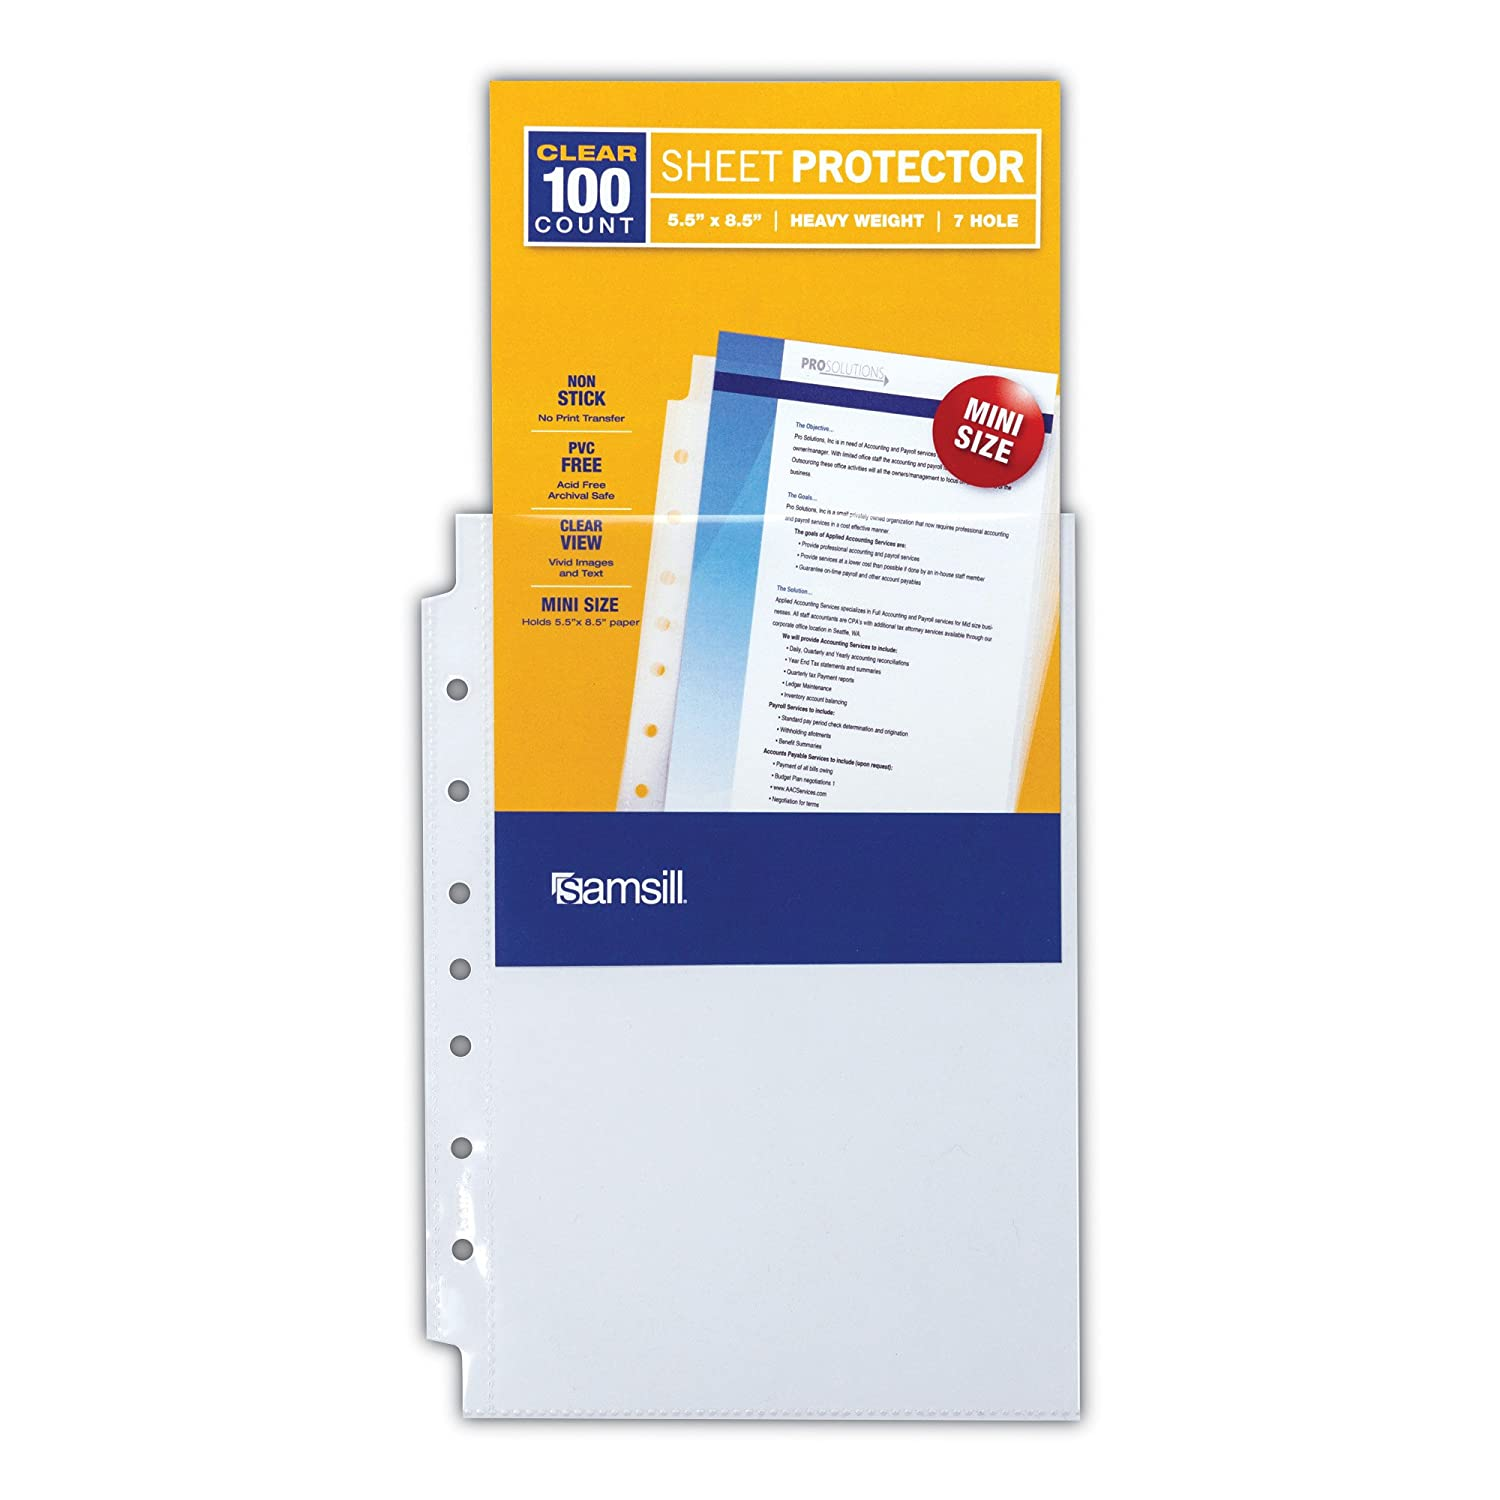 Samsill 100 Mini Clear Heavyweight Sheet Protectors Bulk 100 Pack Top Loading 7 Hole 5.5 x 8.5 Inch Page Protectors for Mini Ring Binders Archival Safe